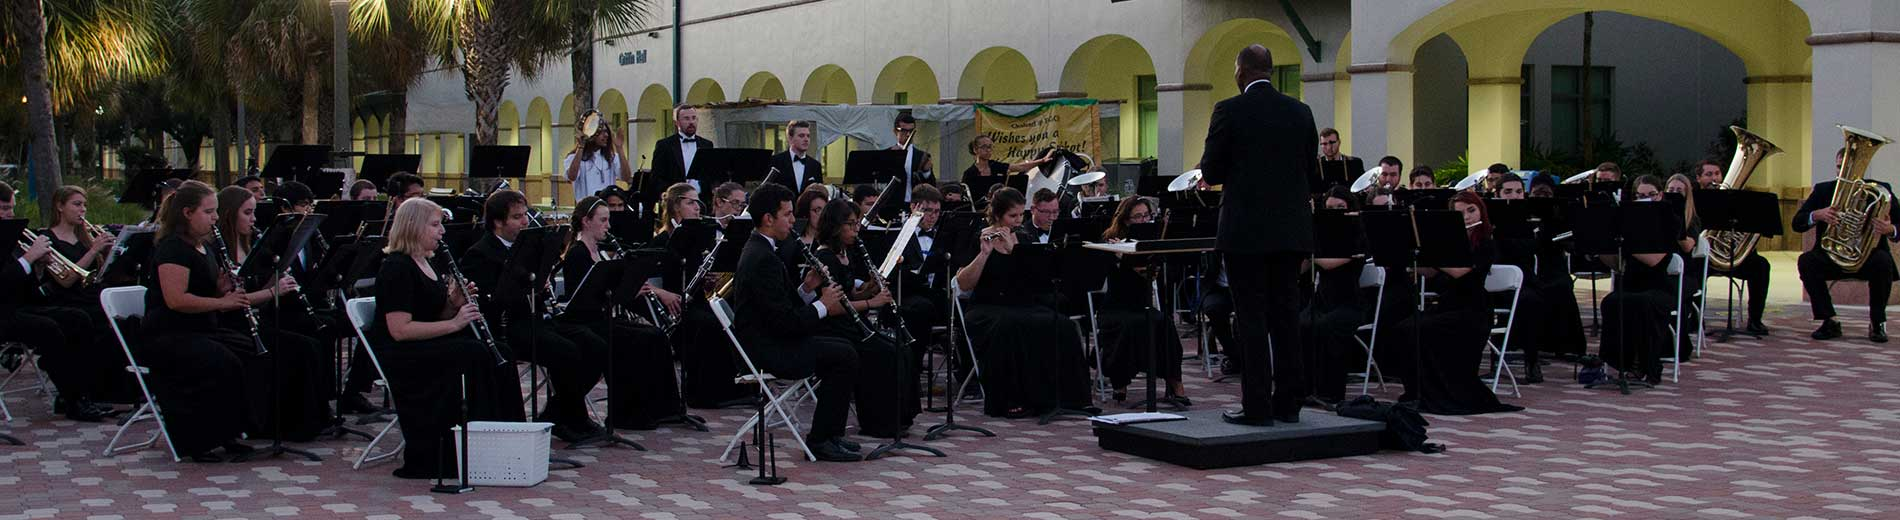 Photo shows the FGCU Wind Orchestra